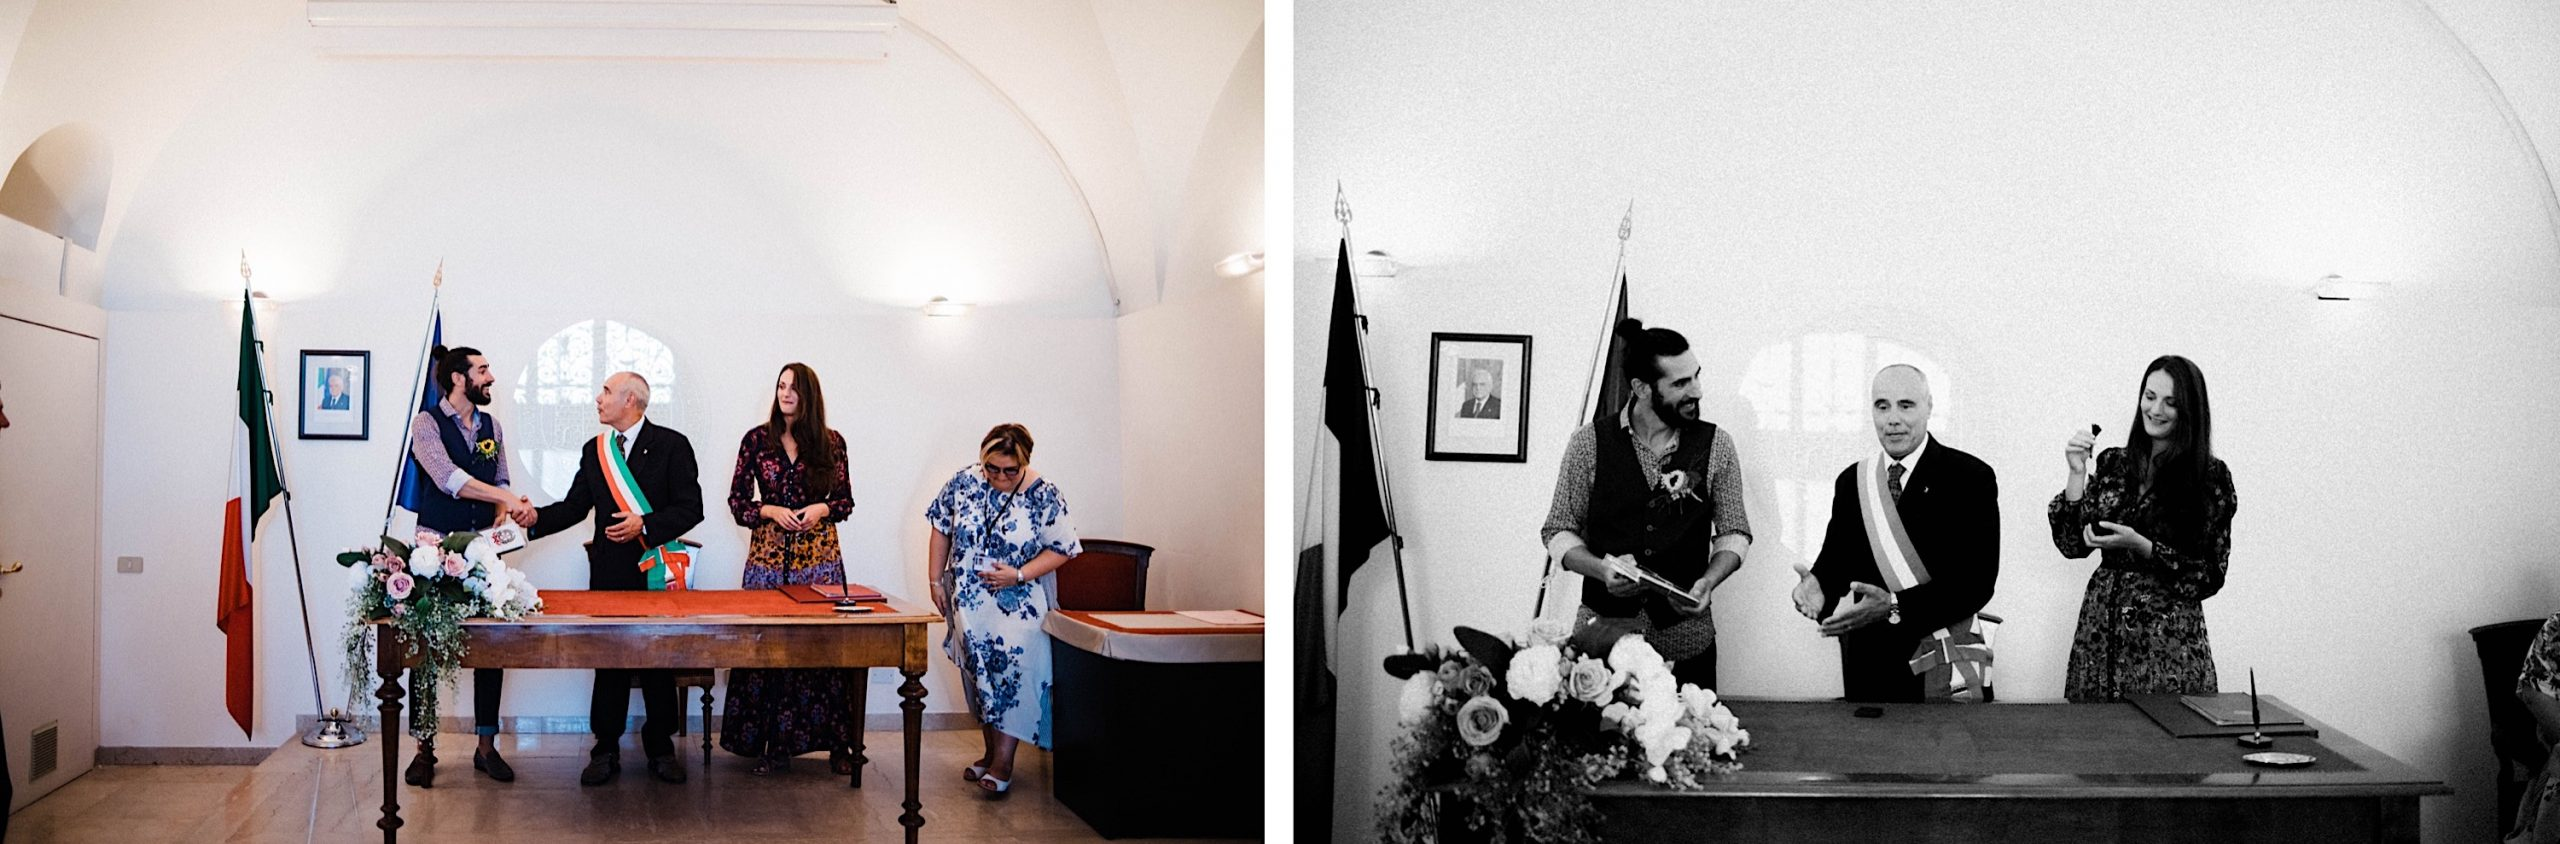 Side-by-side images of a bride & groom signing their wedding certificate at the Trieste comune.